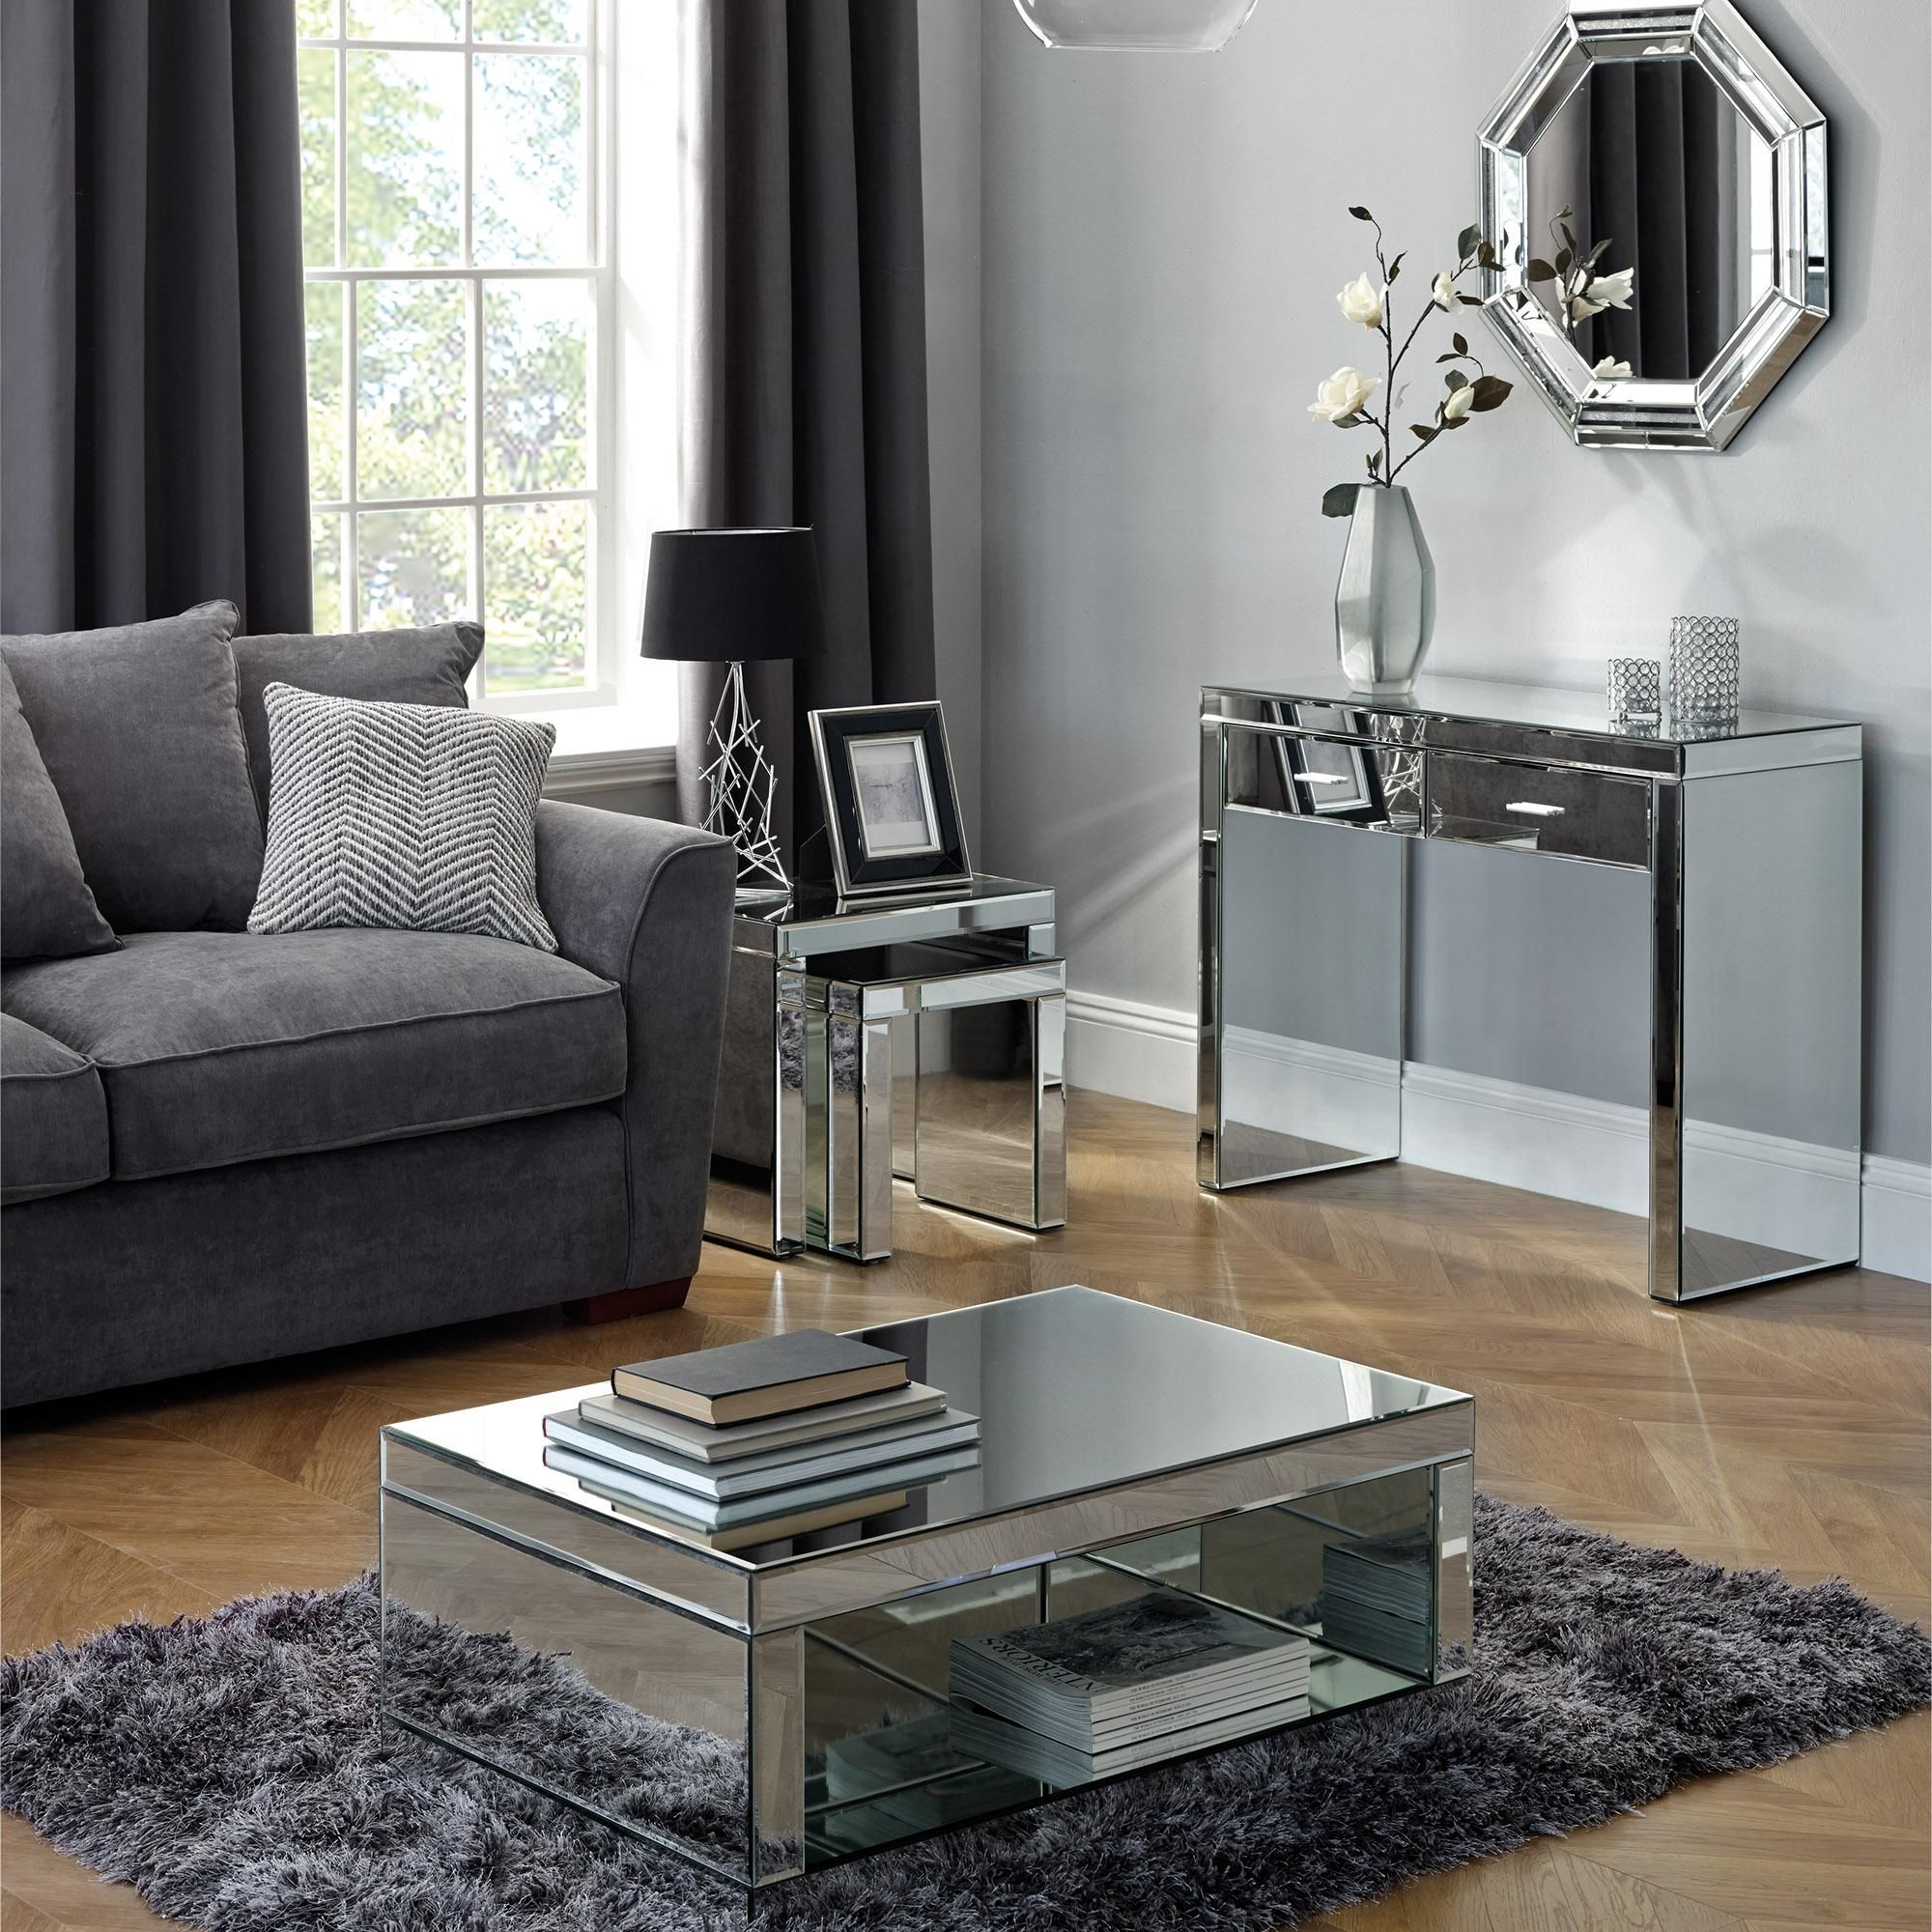 Pin By Taku Matondo On Interery Spalni Mirrored Table Living Room Living Room Table Sets Living Room Collections [ 2000 x 2000 Pixel ]